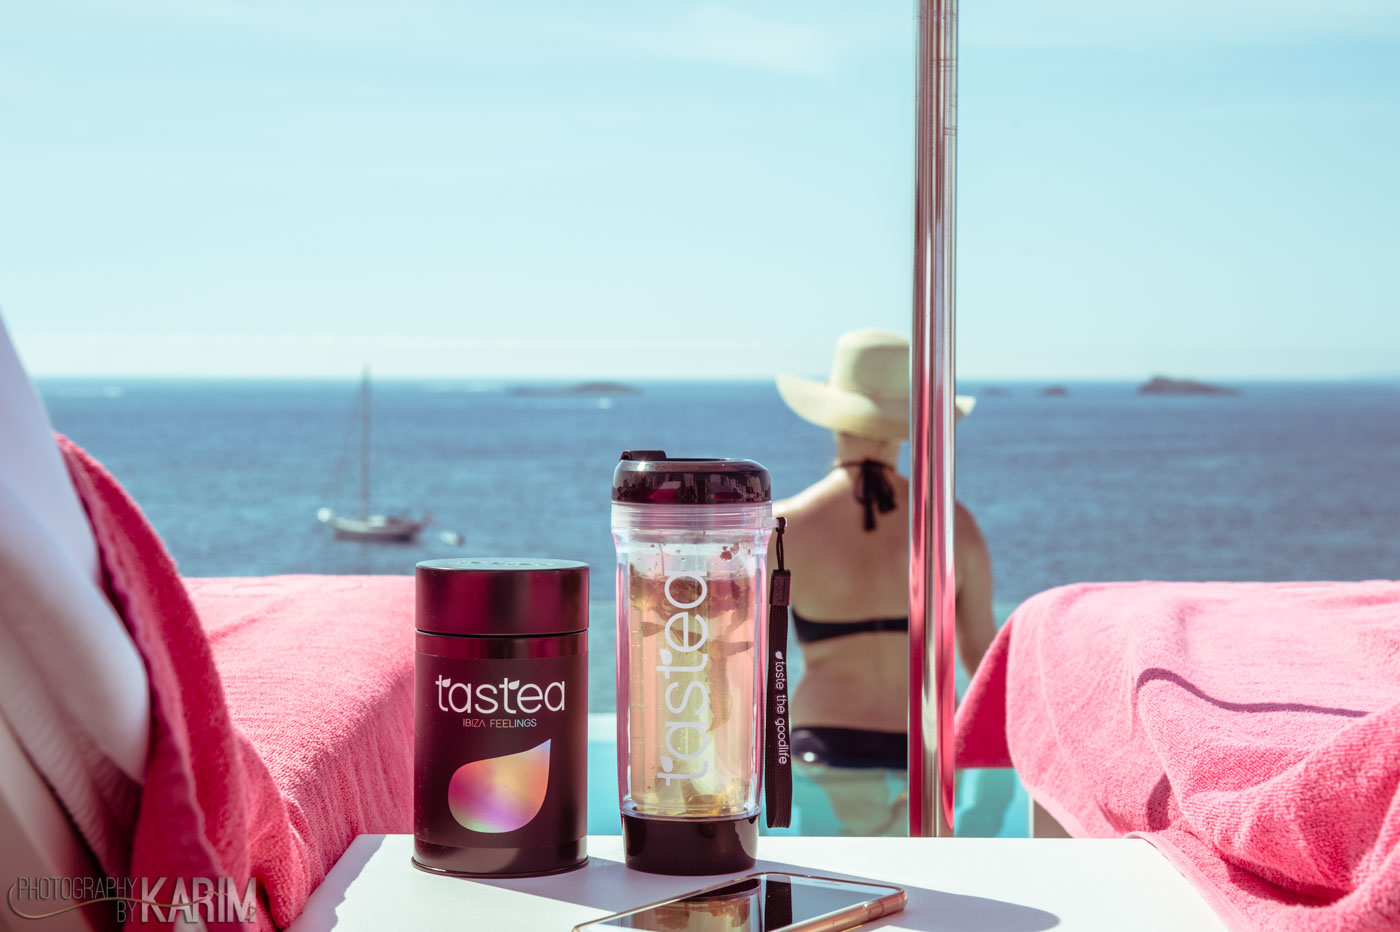 Tastea – Ibiza shoot